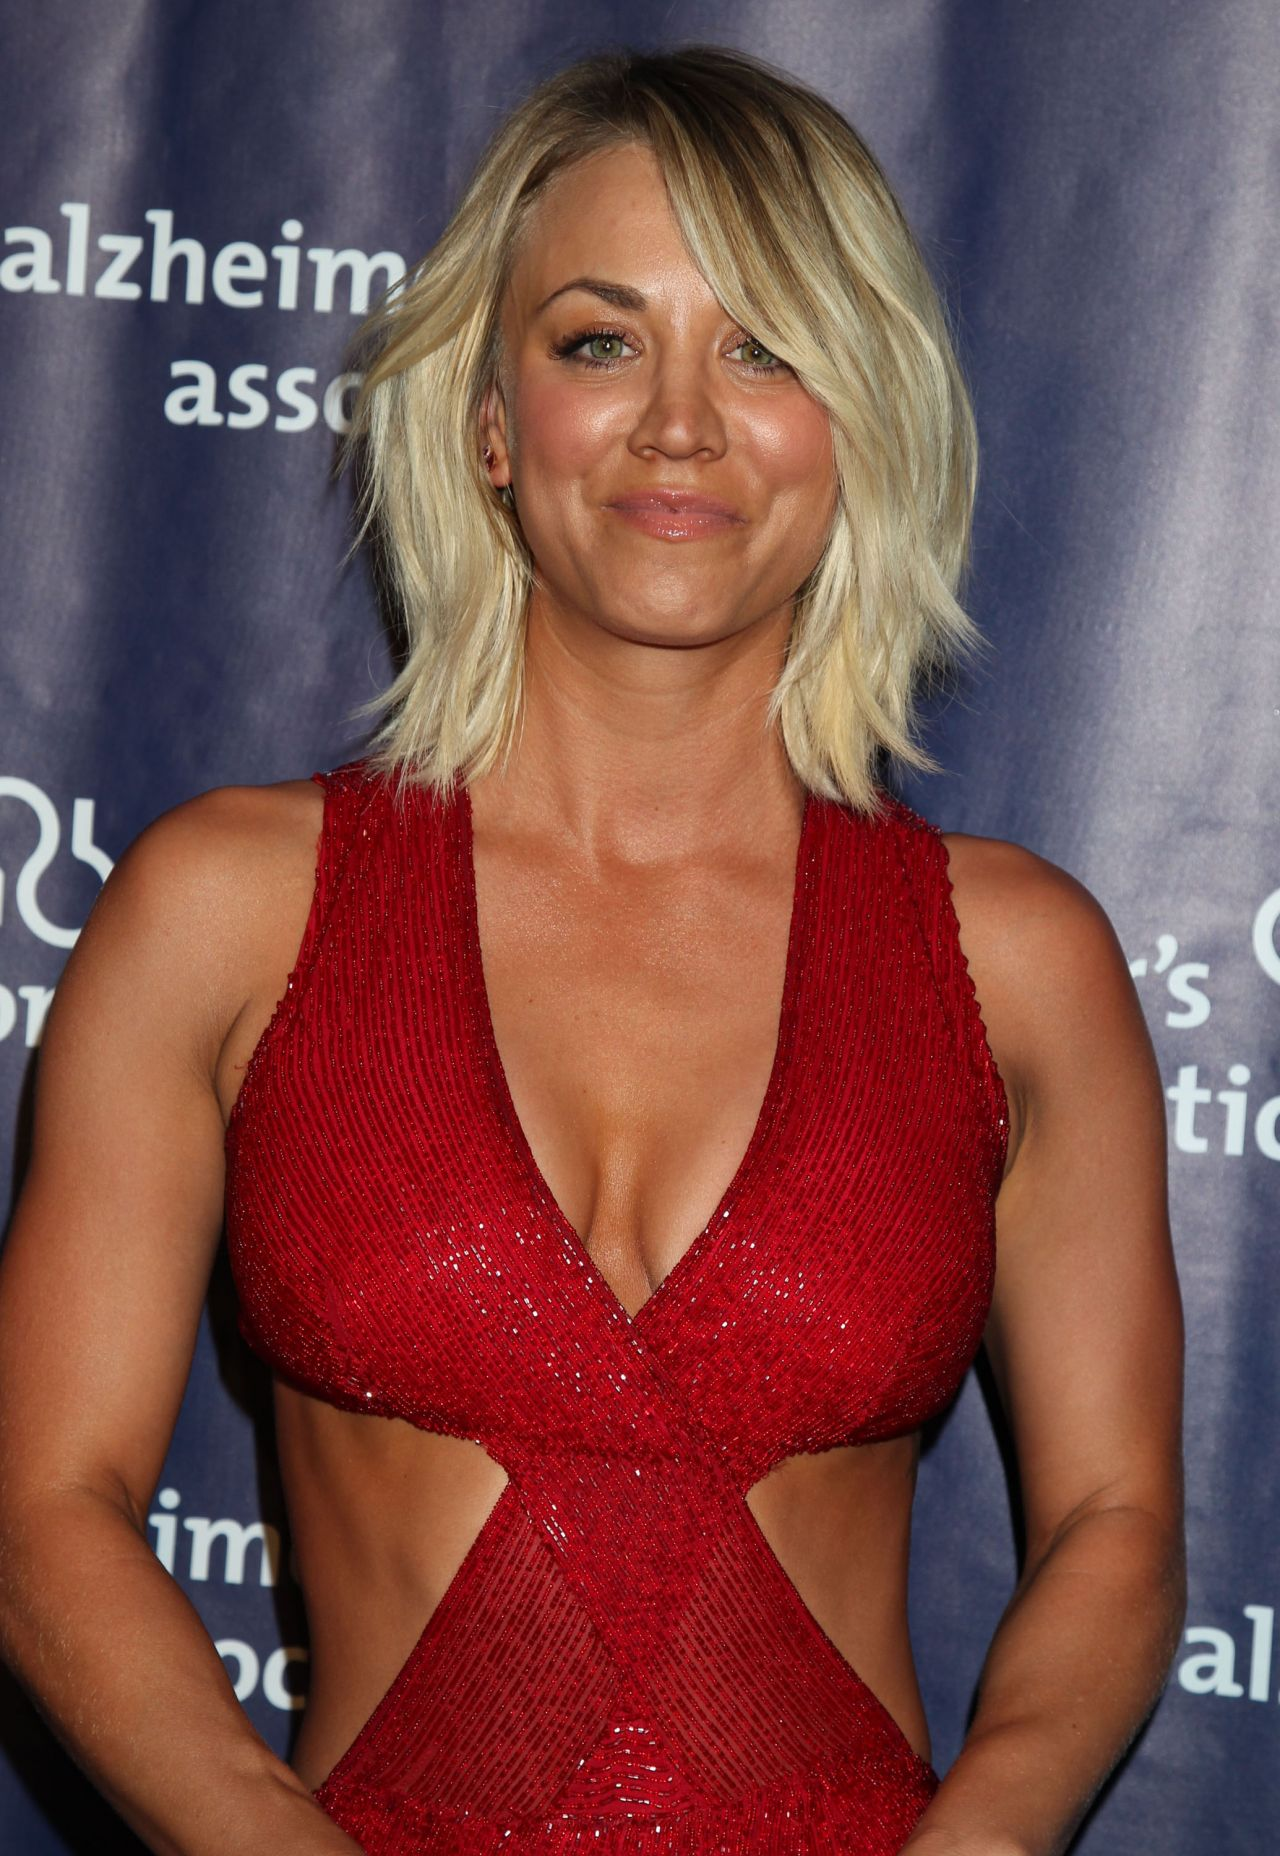 Kaley Cuoco - 2016 Alzheimers Association A Night At -8297